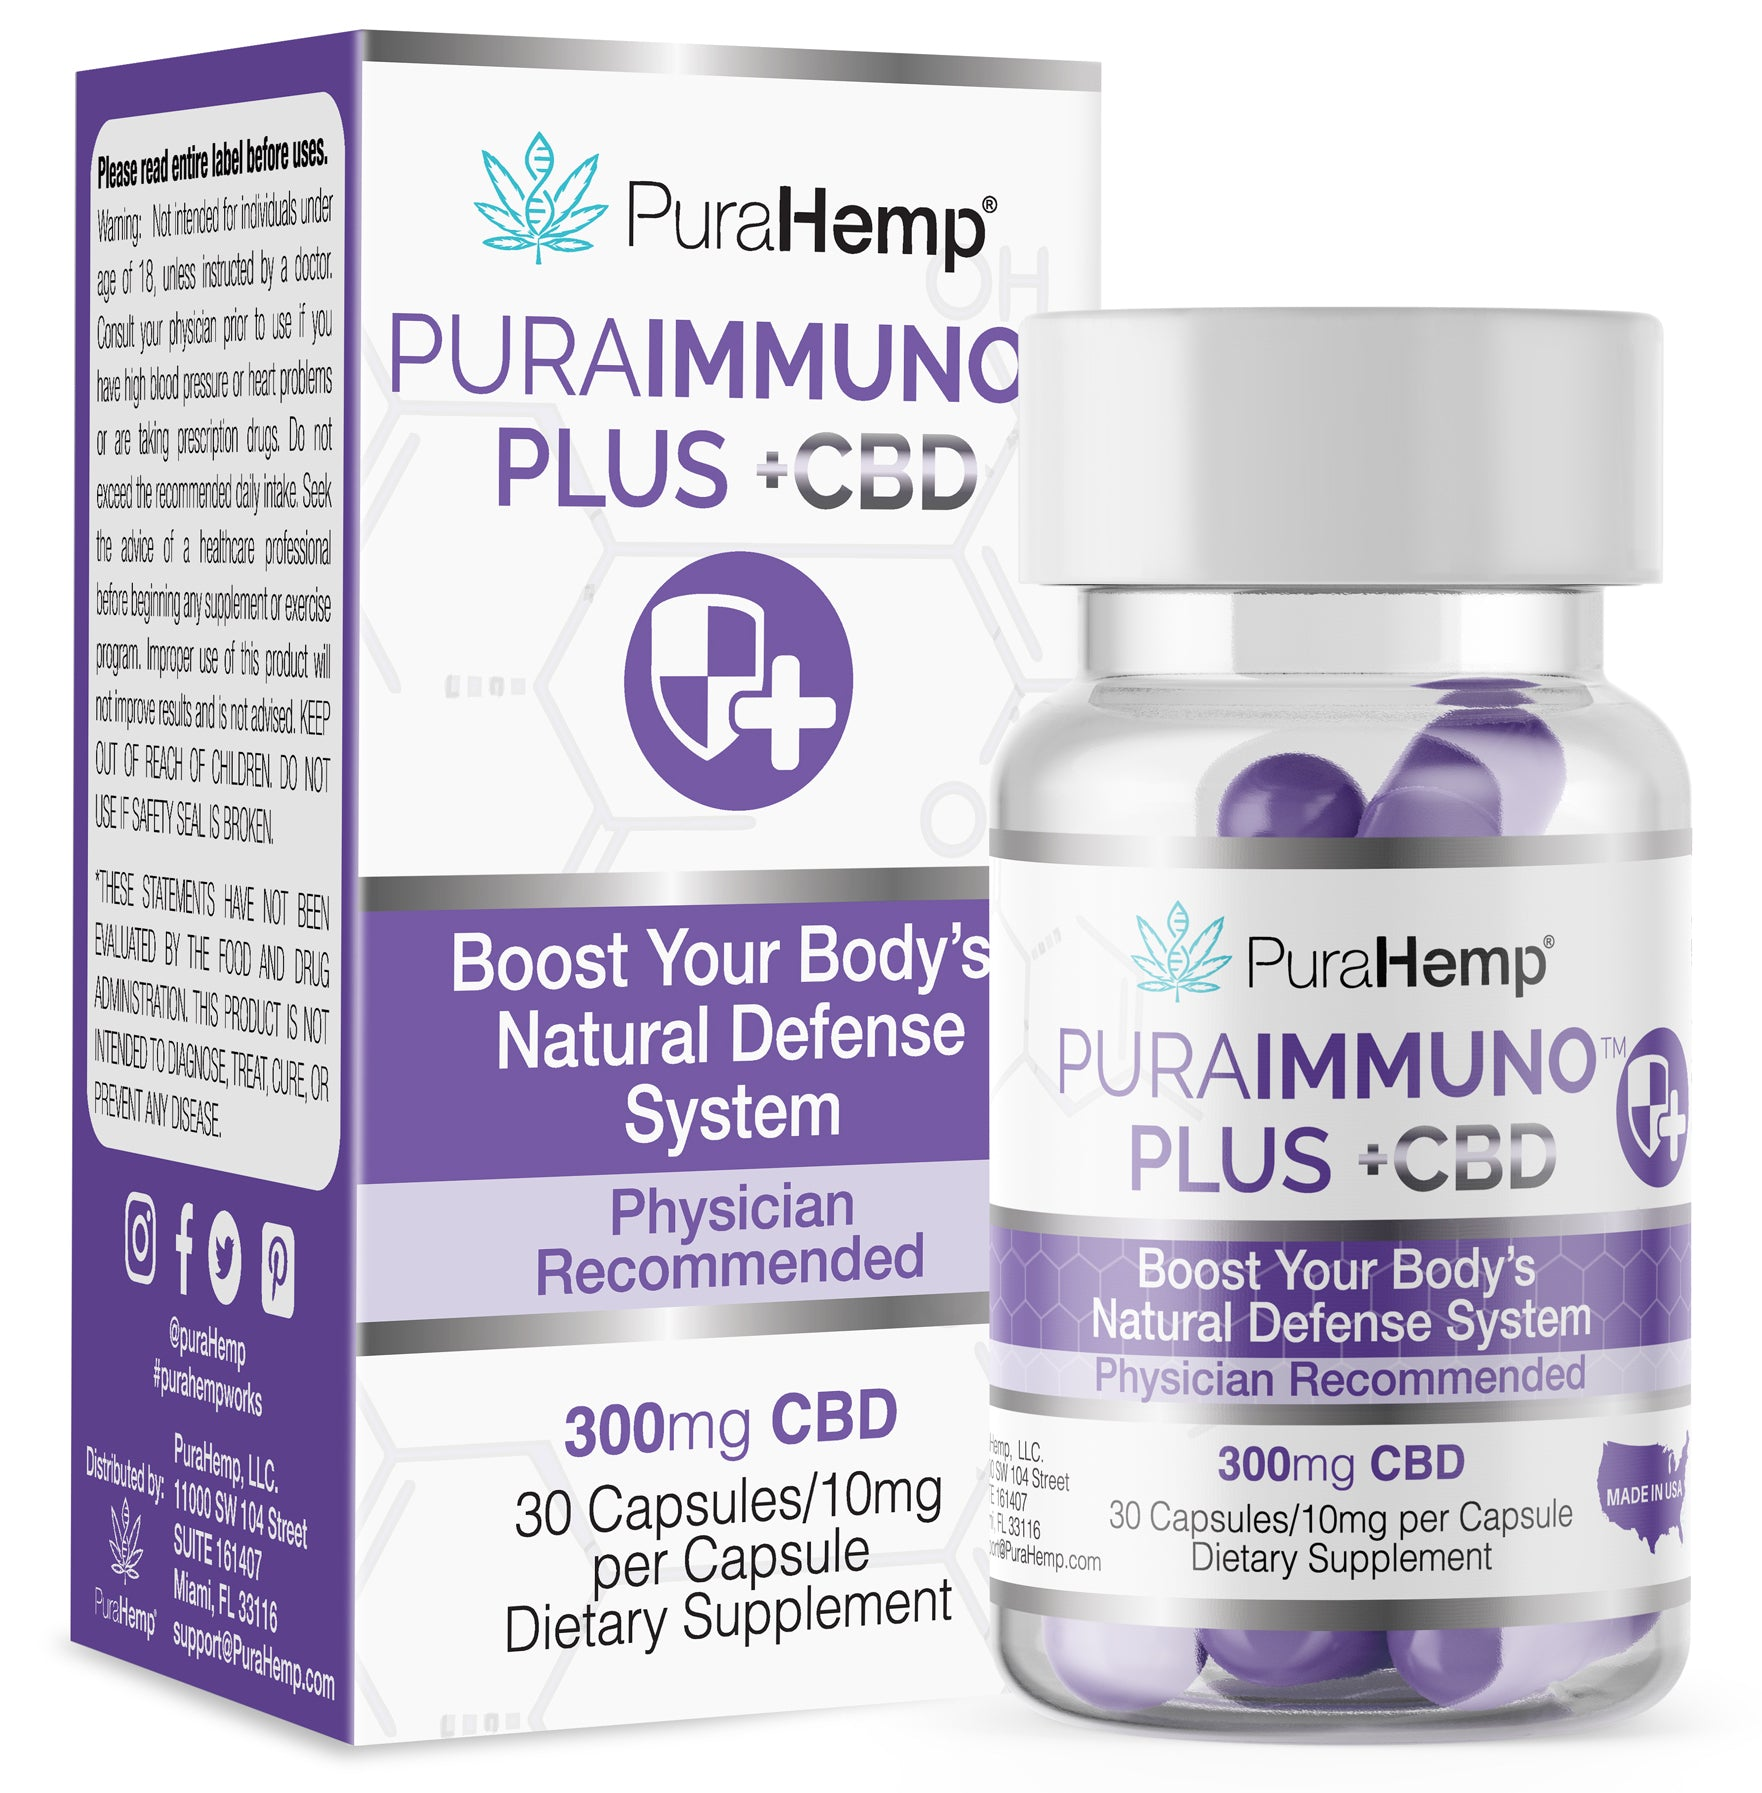 pura hemp cbd Pills coupon code